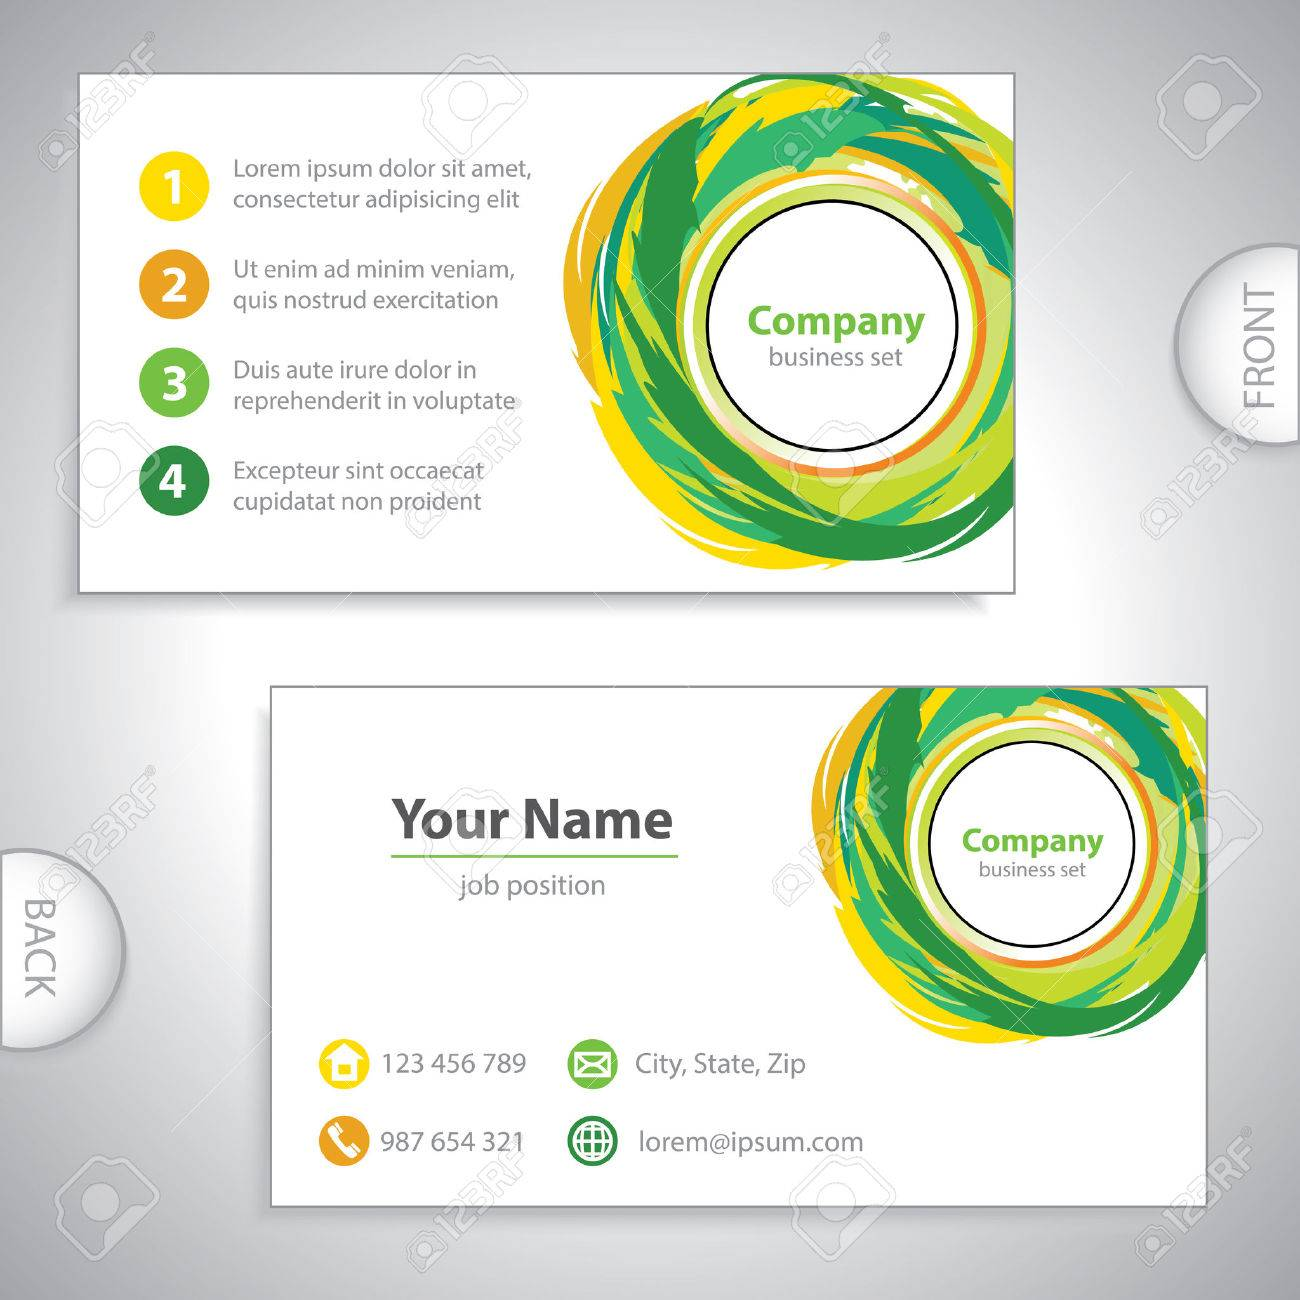 Business card recycling mix ecological variation yellow green business card recycling mix ecological variation yellow green version stock vector colourmoves